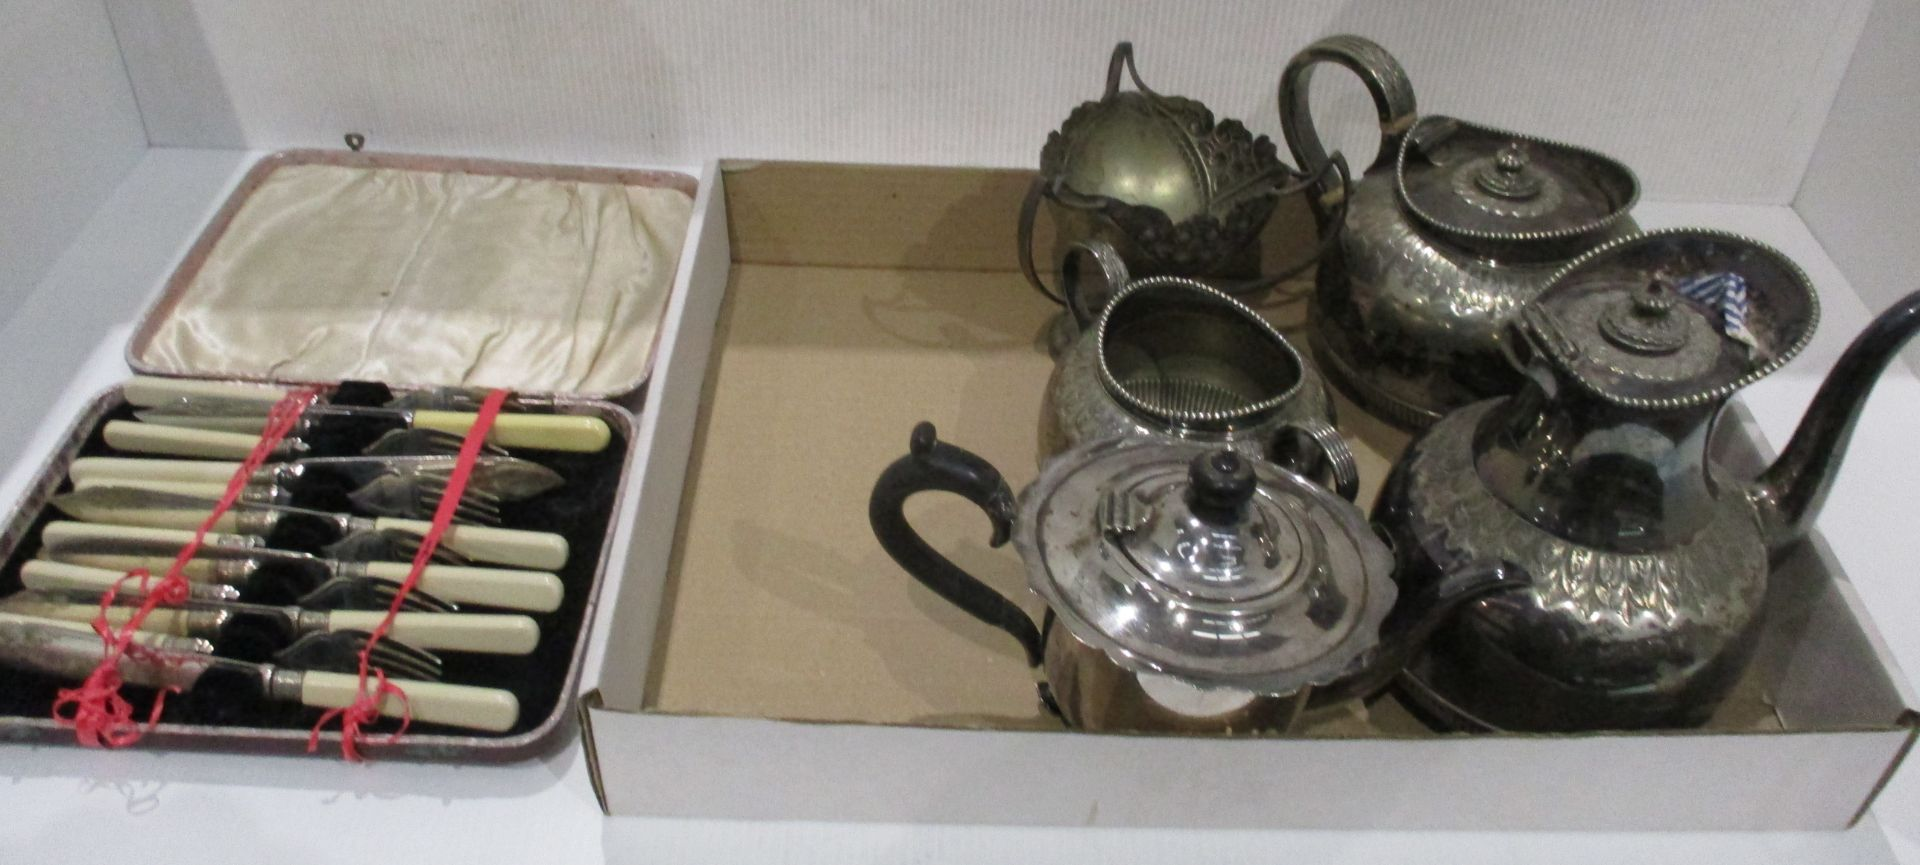 Lot 23 - A fish knife and fork set and five other plated items - teapots,